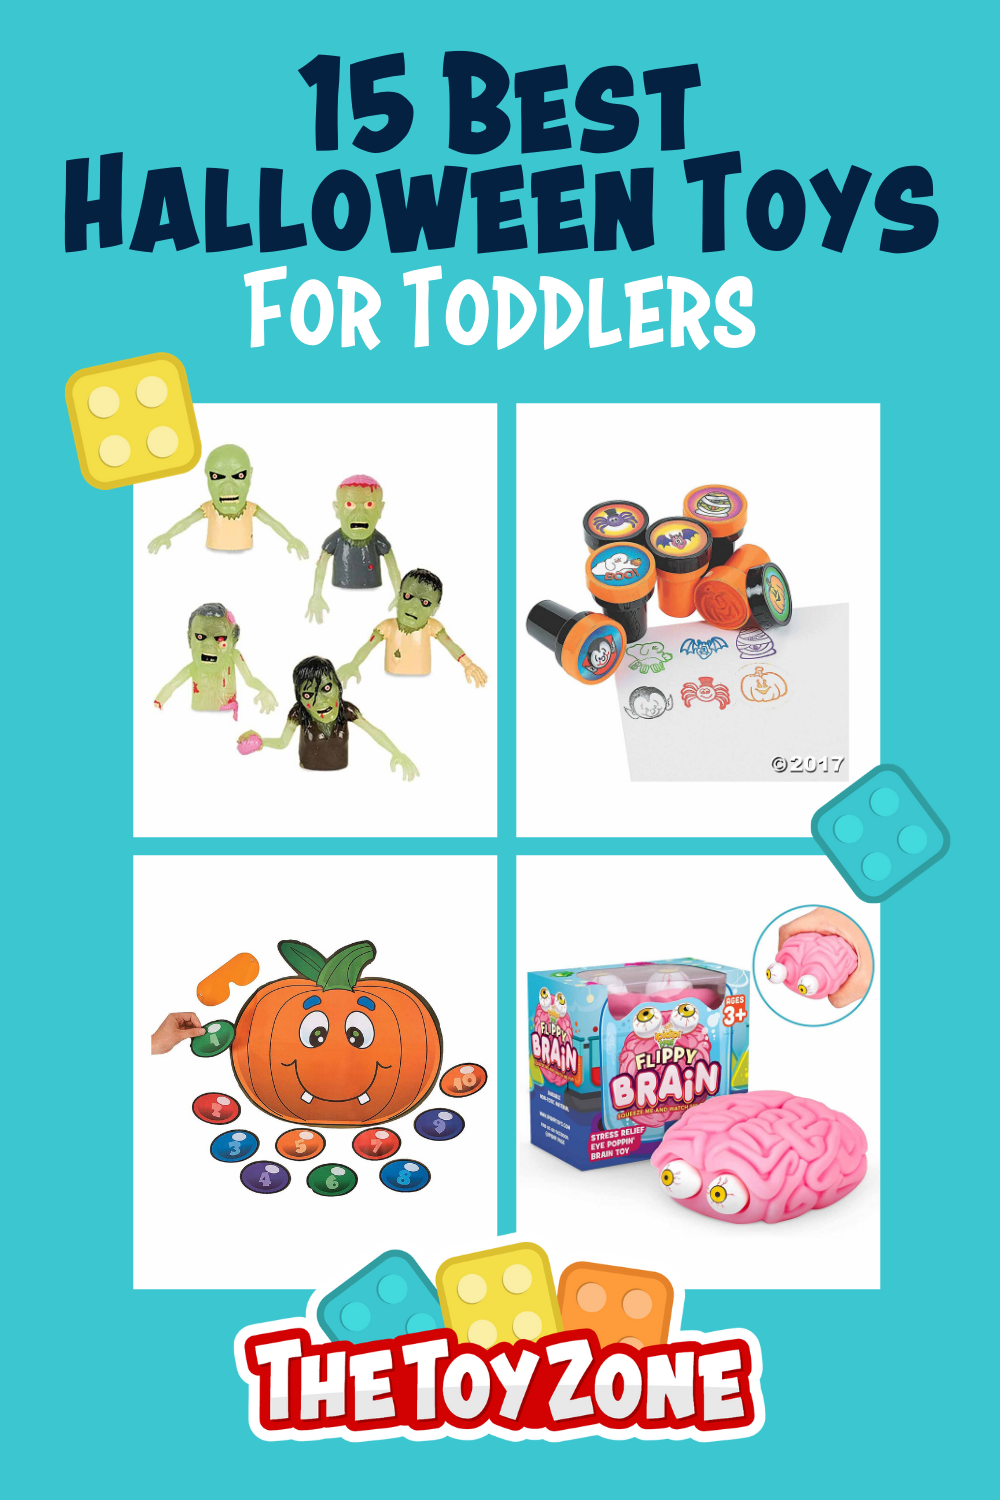 15 Best Halloween Toys For Toddlers 2020 - TheToyZone in ...